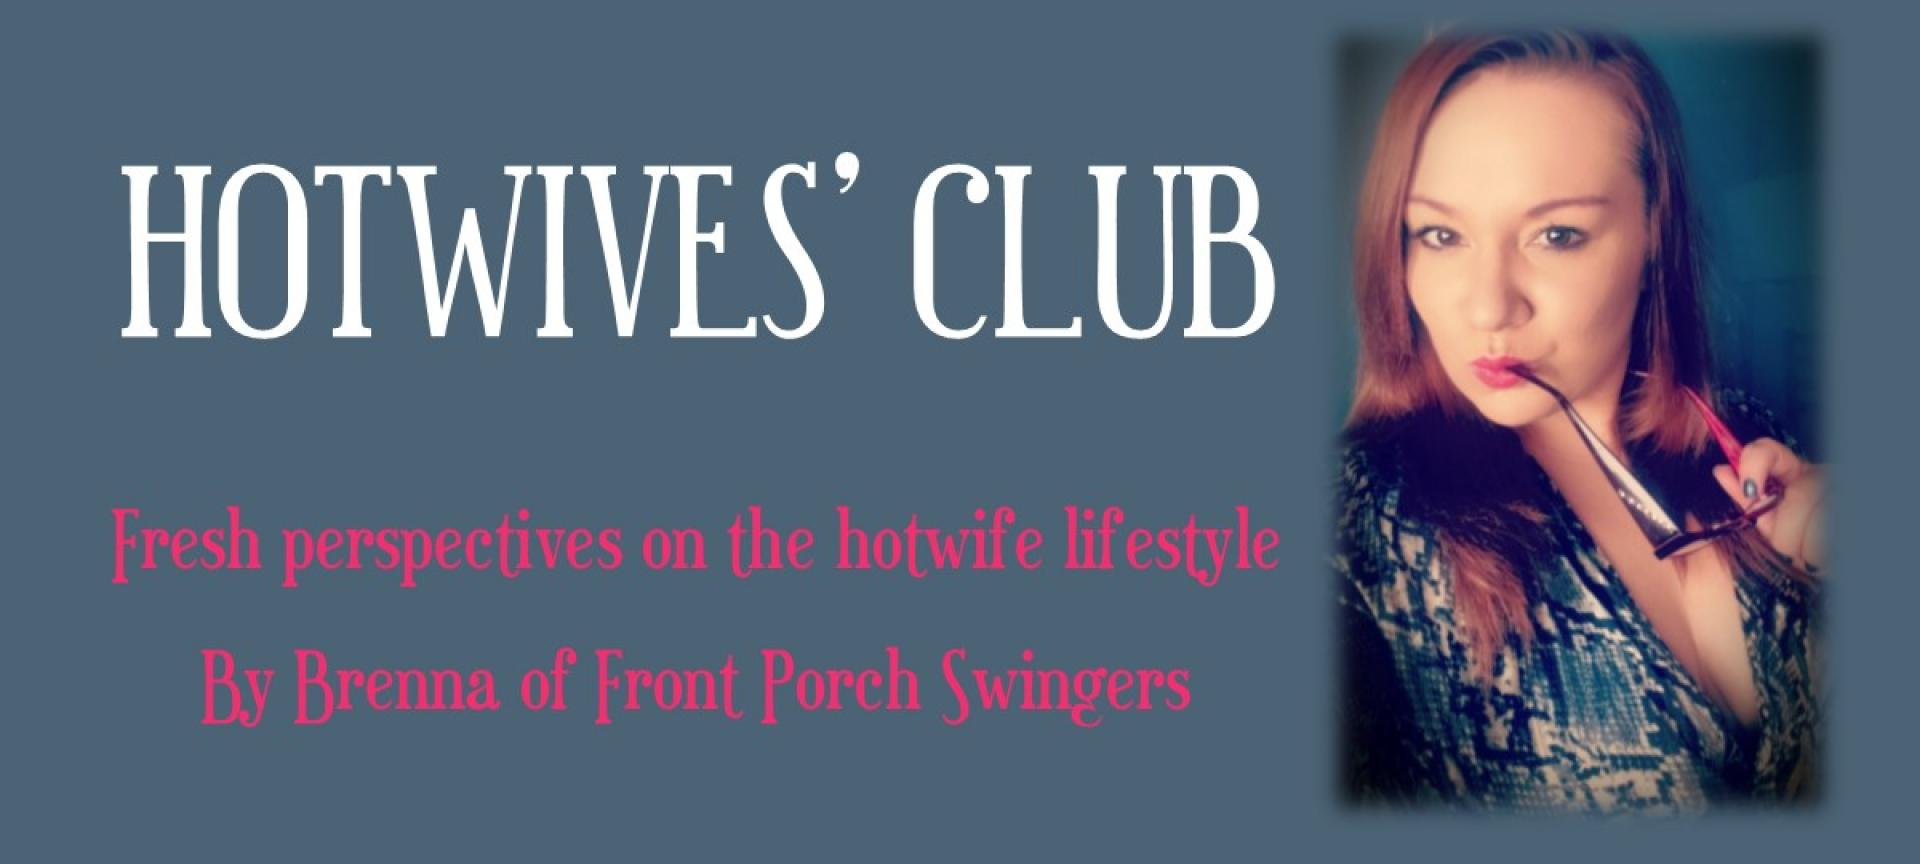 ASN Lifestyle Magazine Hotwives_Club Brenna_Front_Porch_Swingers